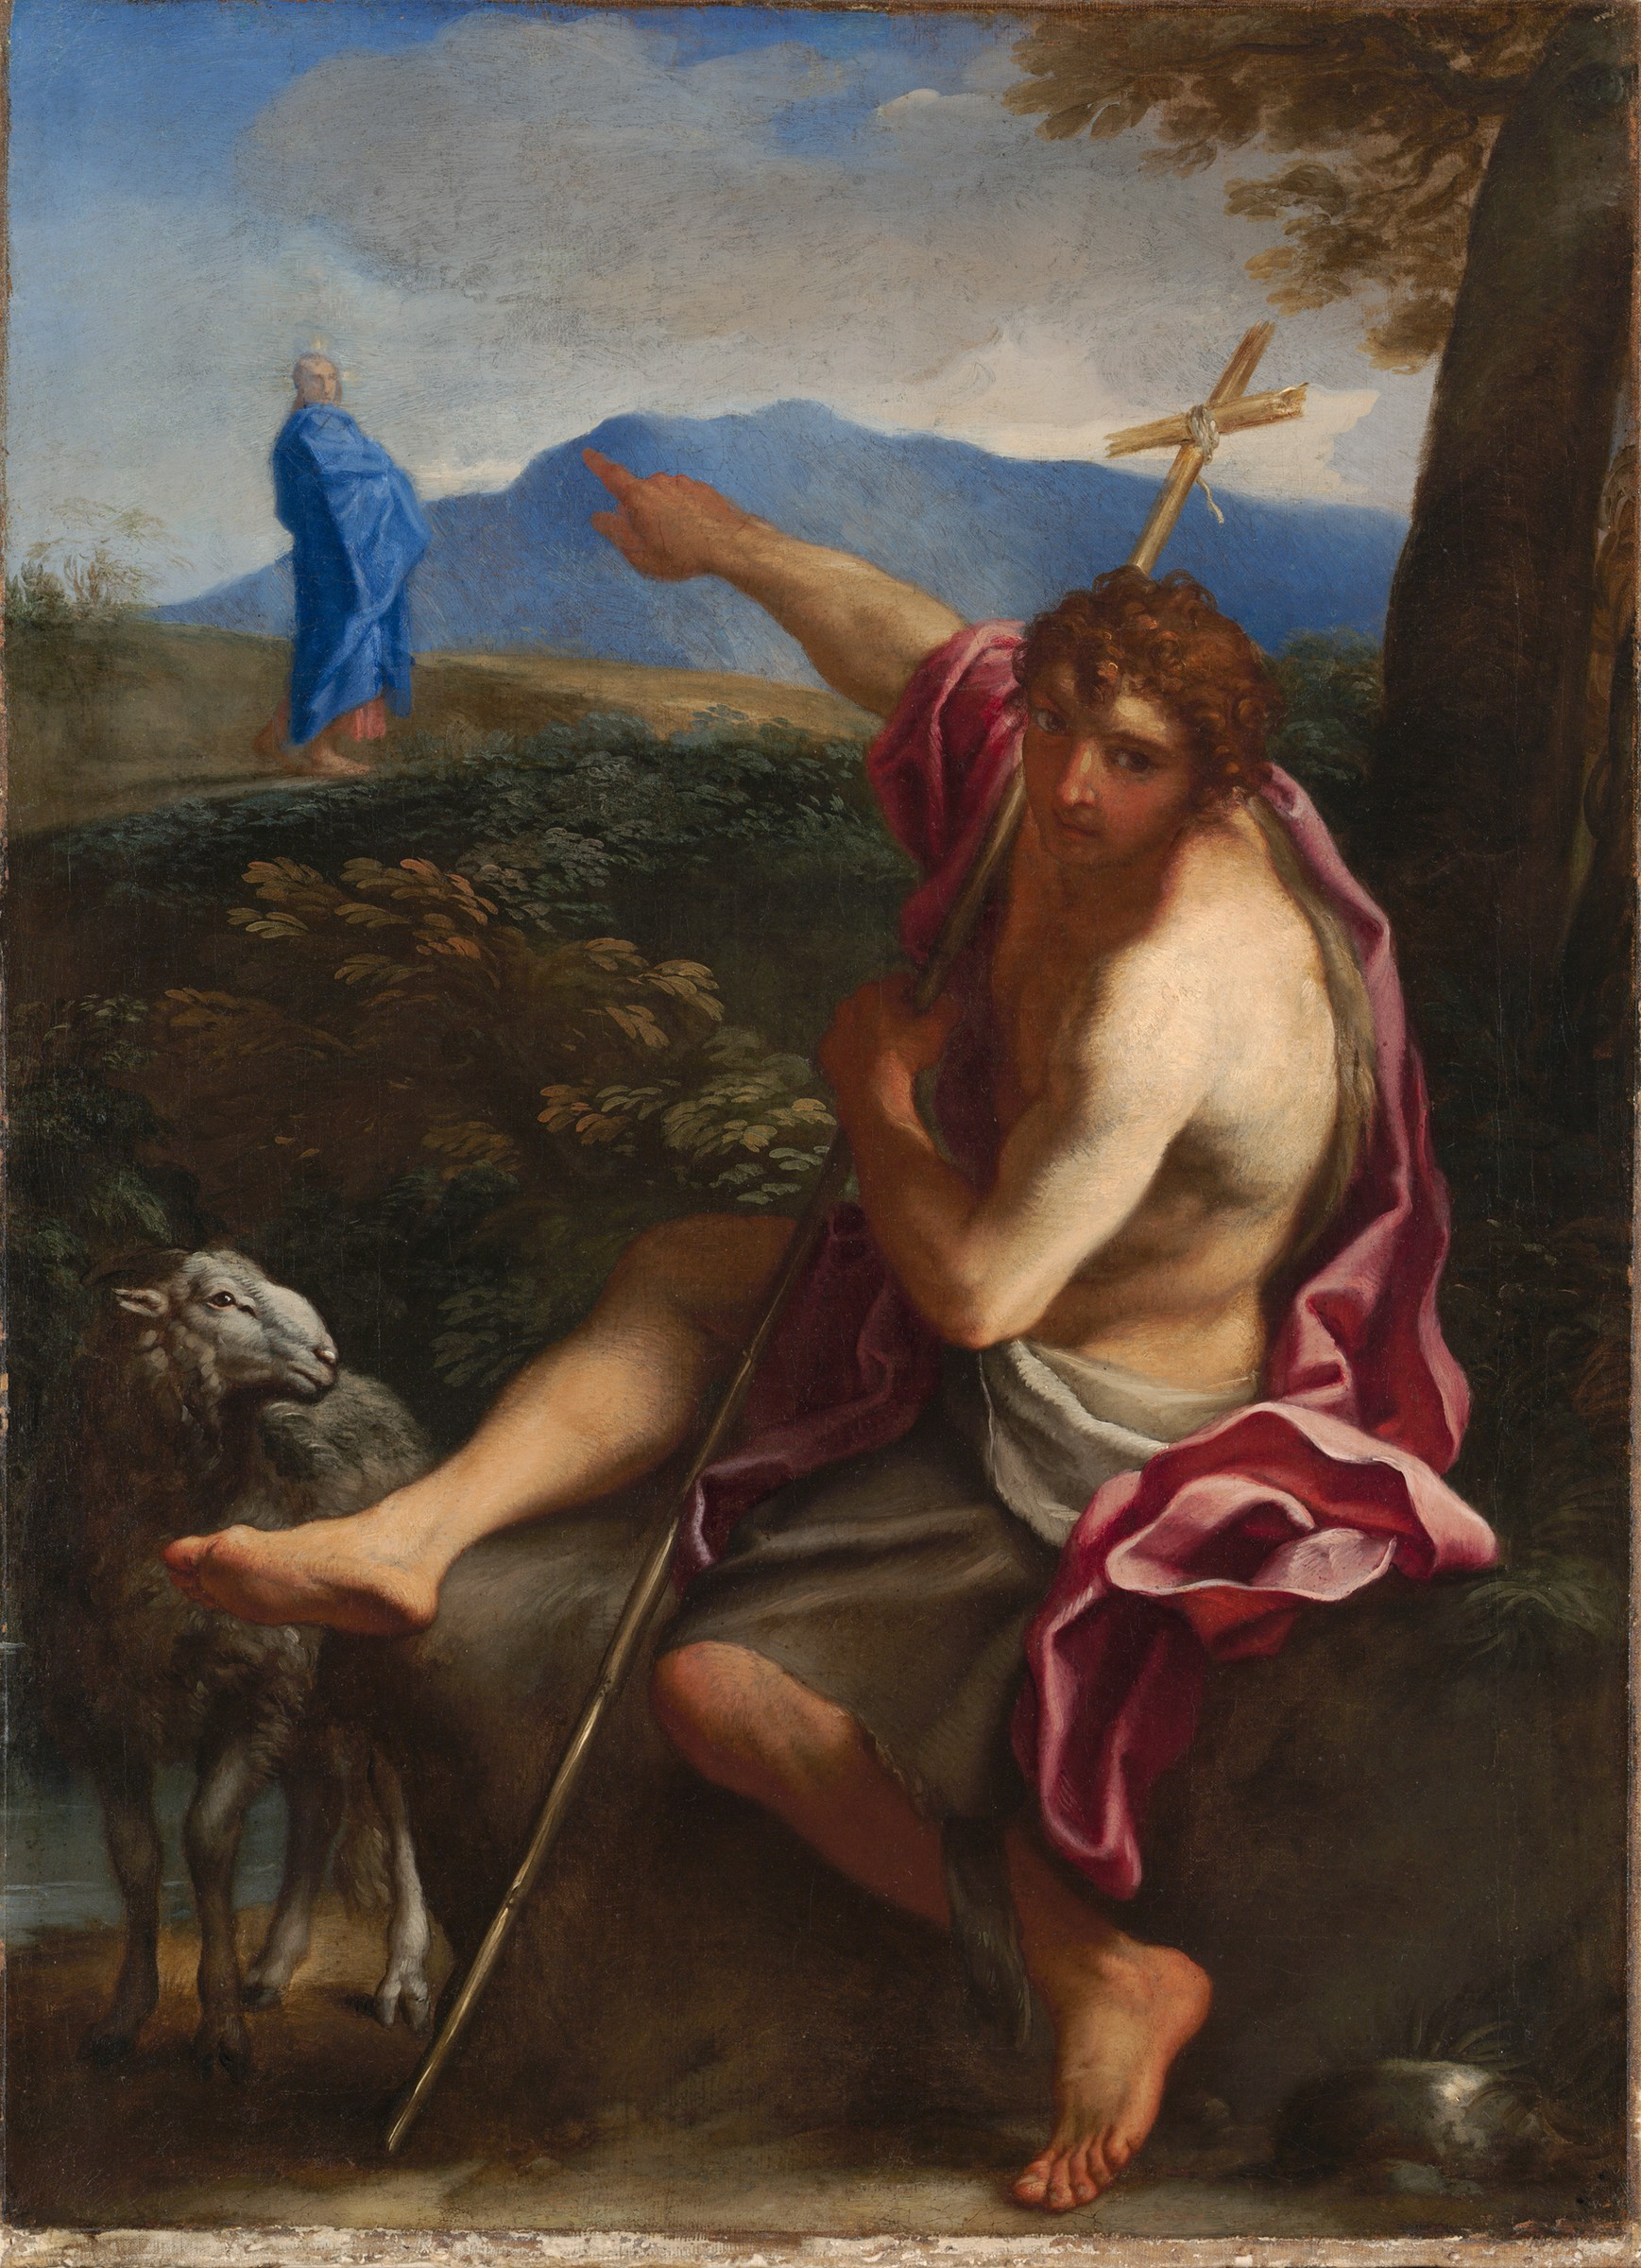 Saint John the Baptist Pointing to Christ in a Landscape, by Carlo Maratti, c. 1656. Fogg Art Museum, Cambridge, Massachusetts, United States. Via IllustratedPrayer.com